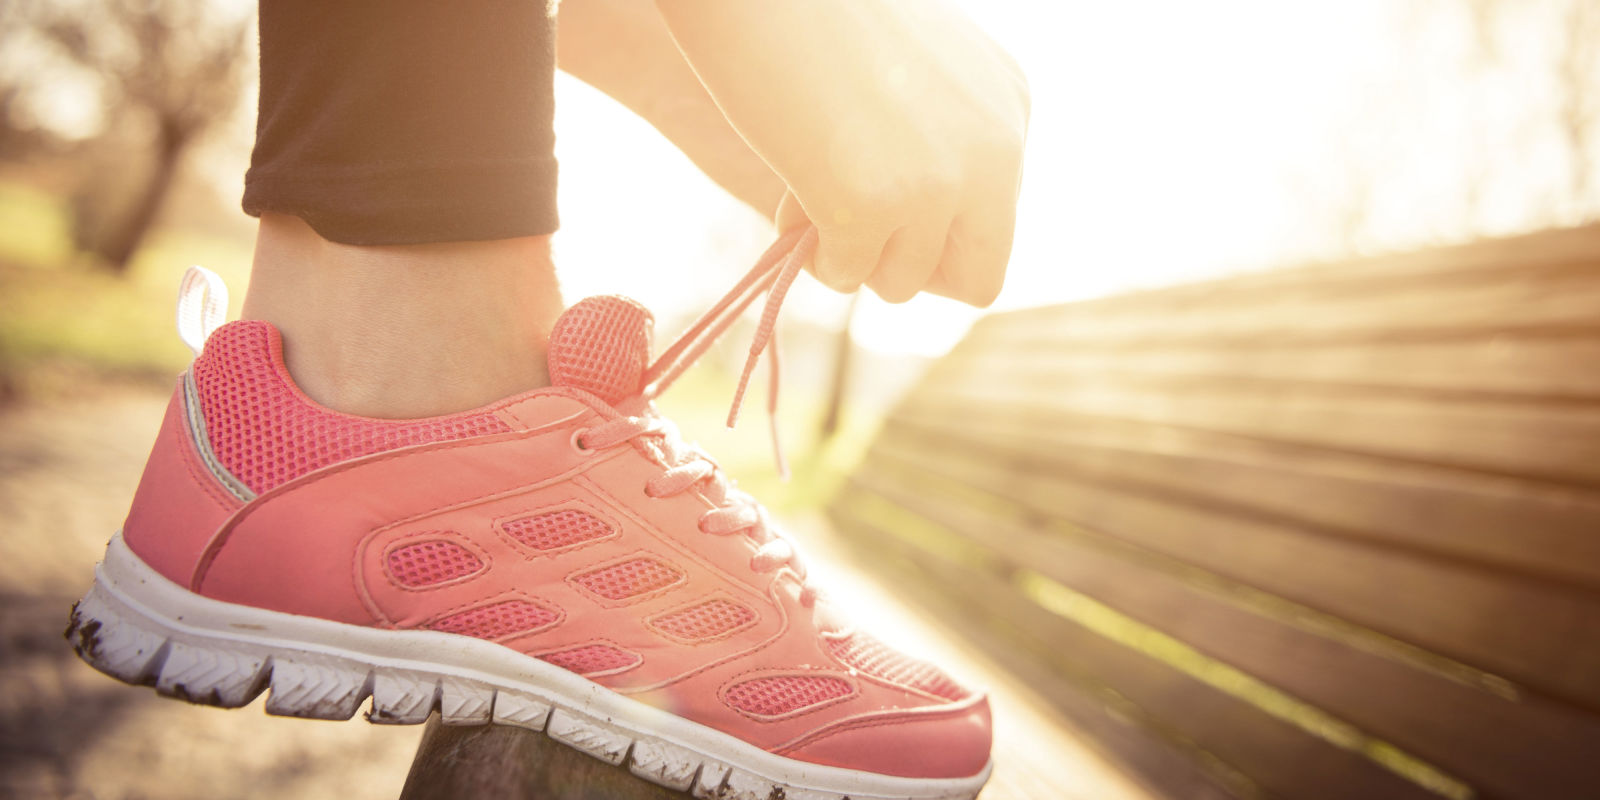 How To Lace Running Shoes For Flat Feet